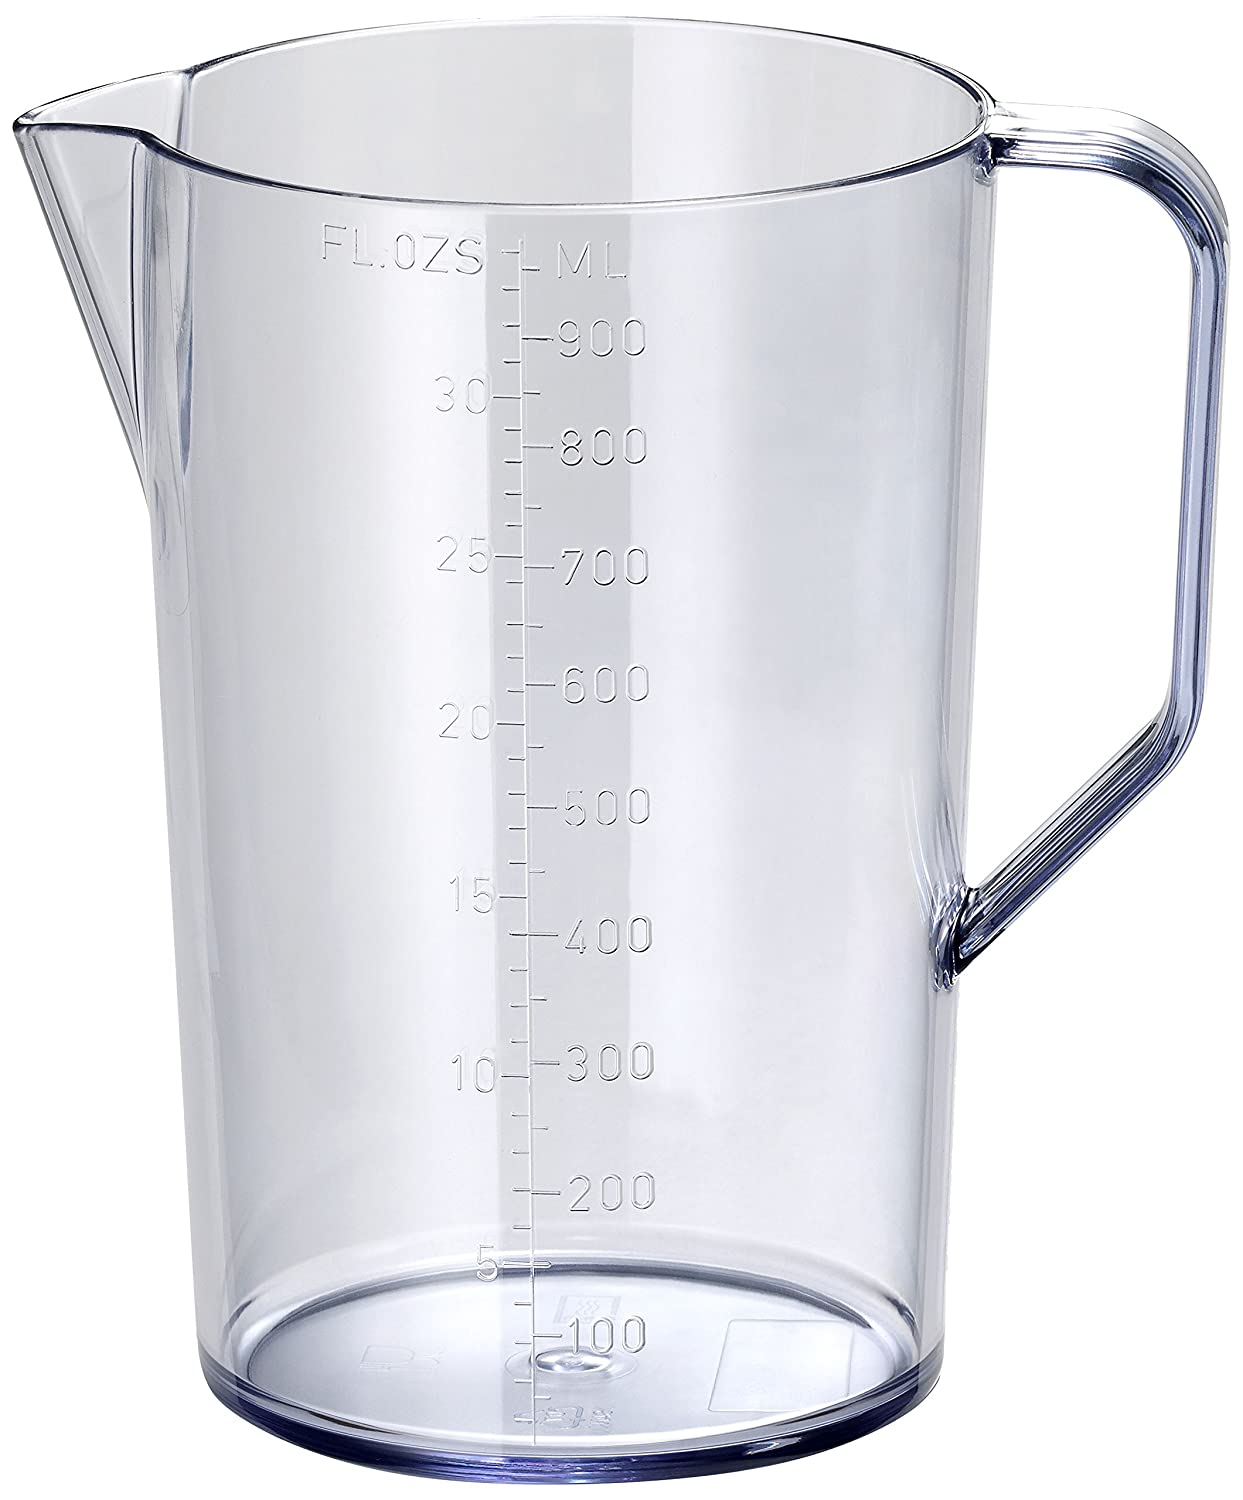 Bamix MX 790024 Graduated Jug with Handle, Plastic, Clear, 14.5 x 10.5 x 16 cm